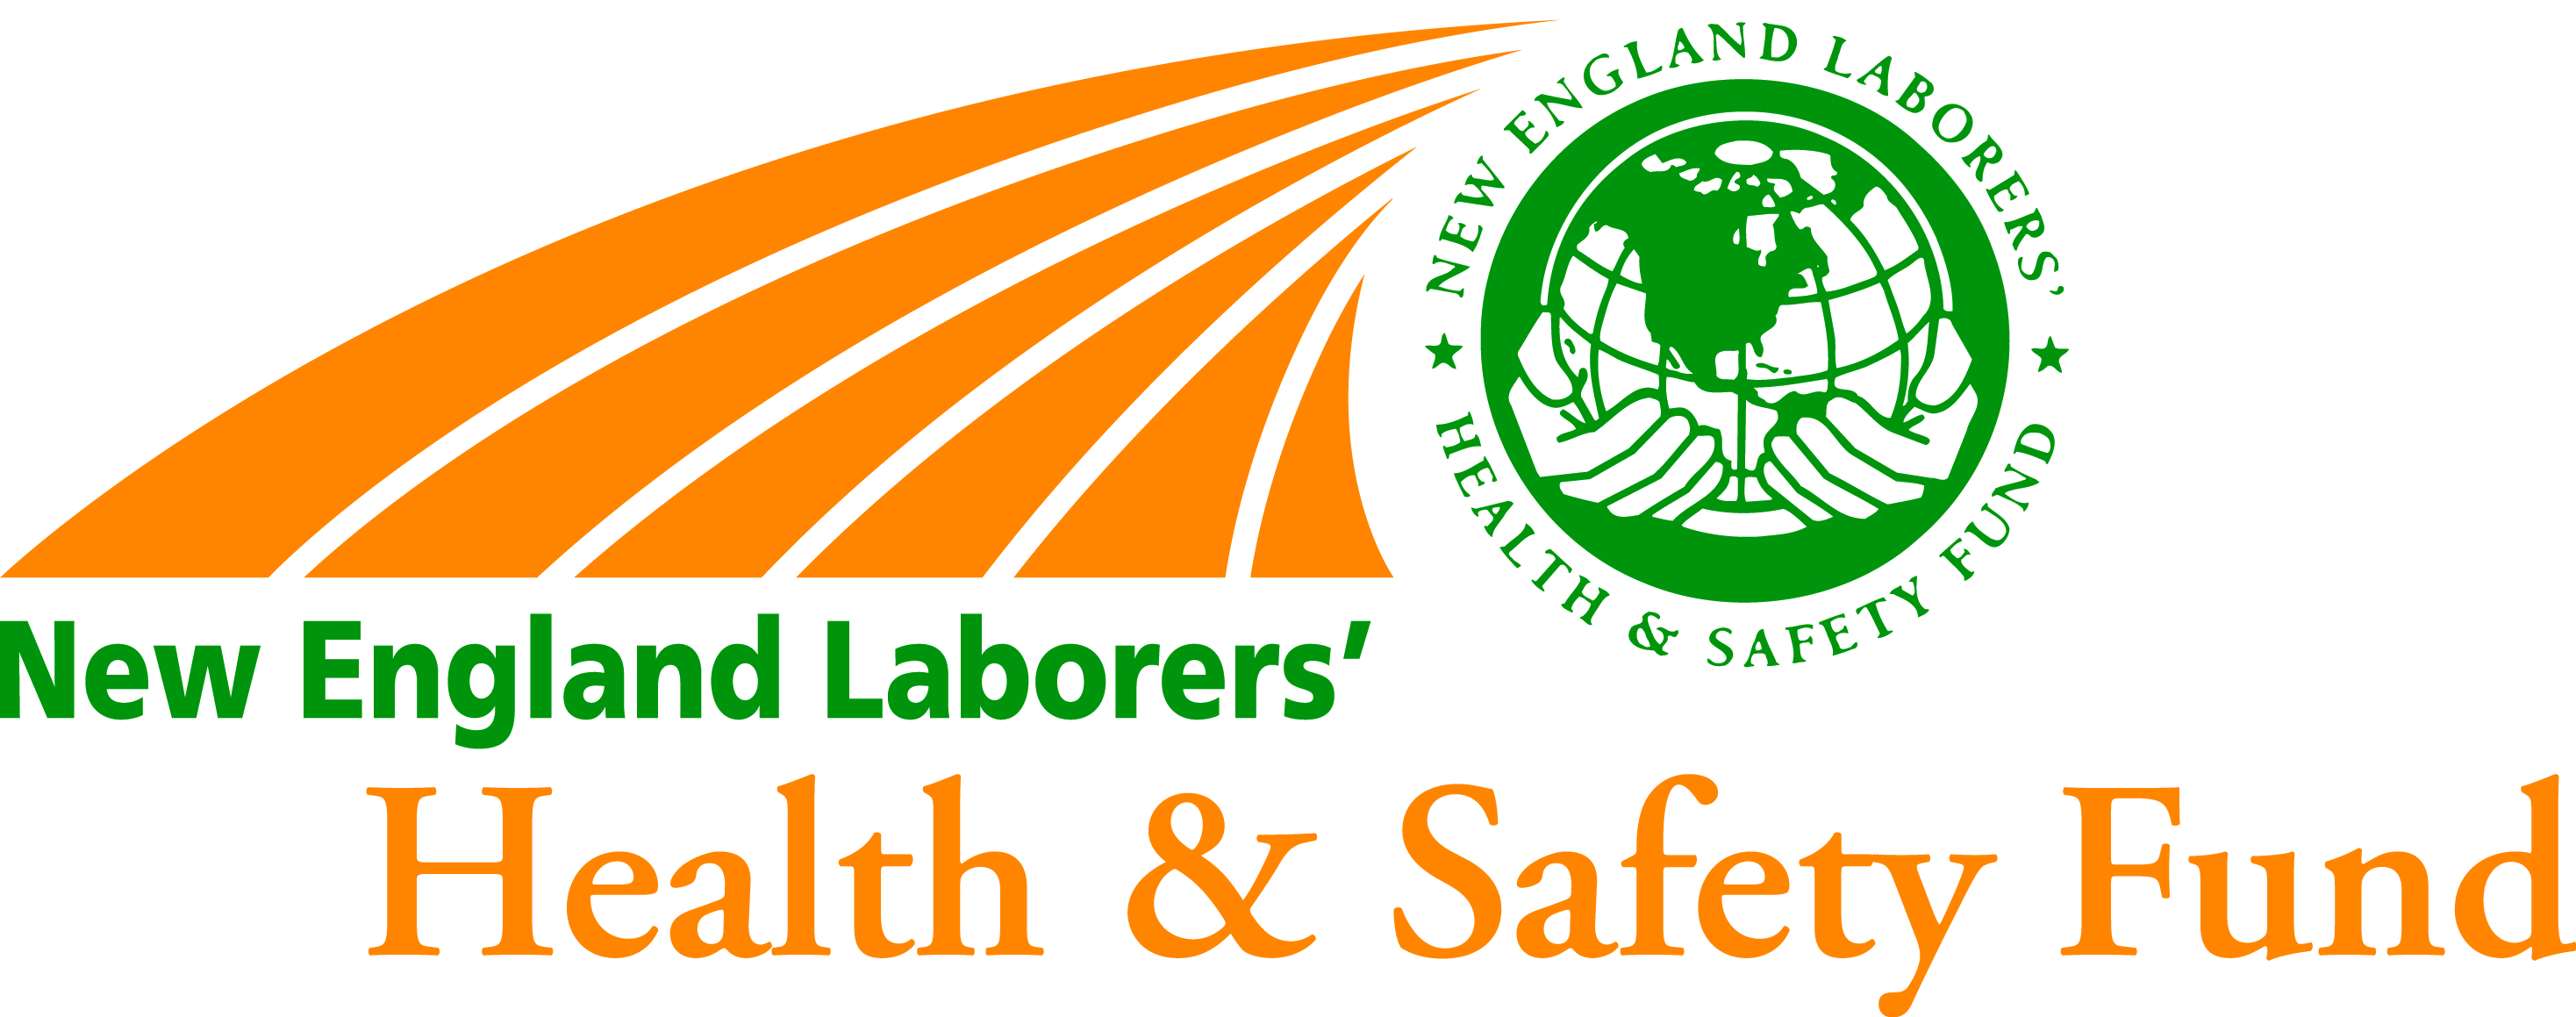 New England Laborers' Health & Safety Fund